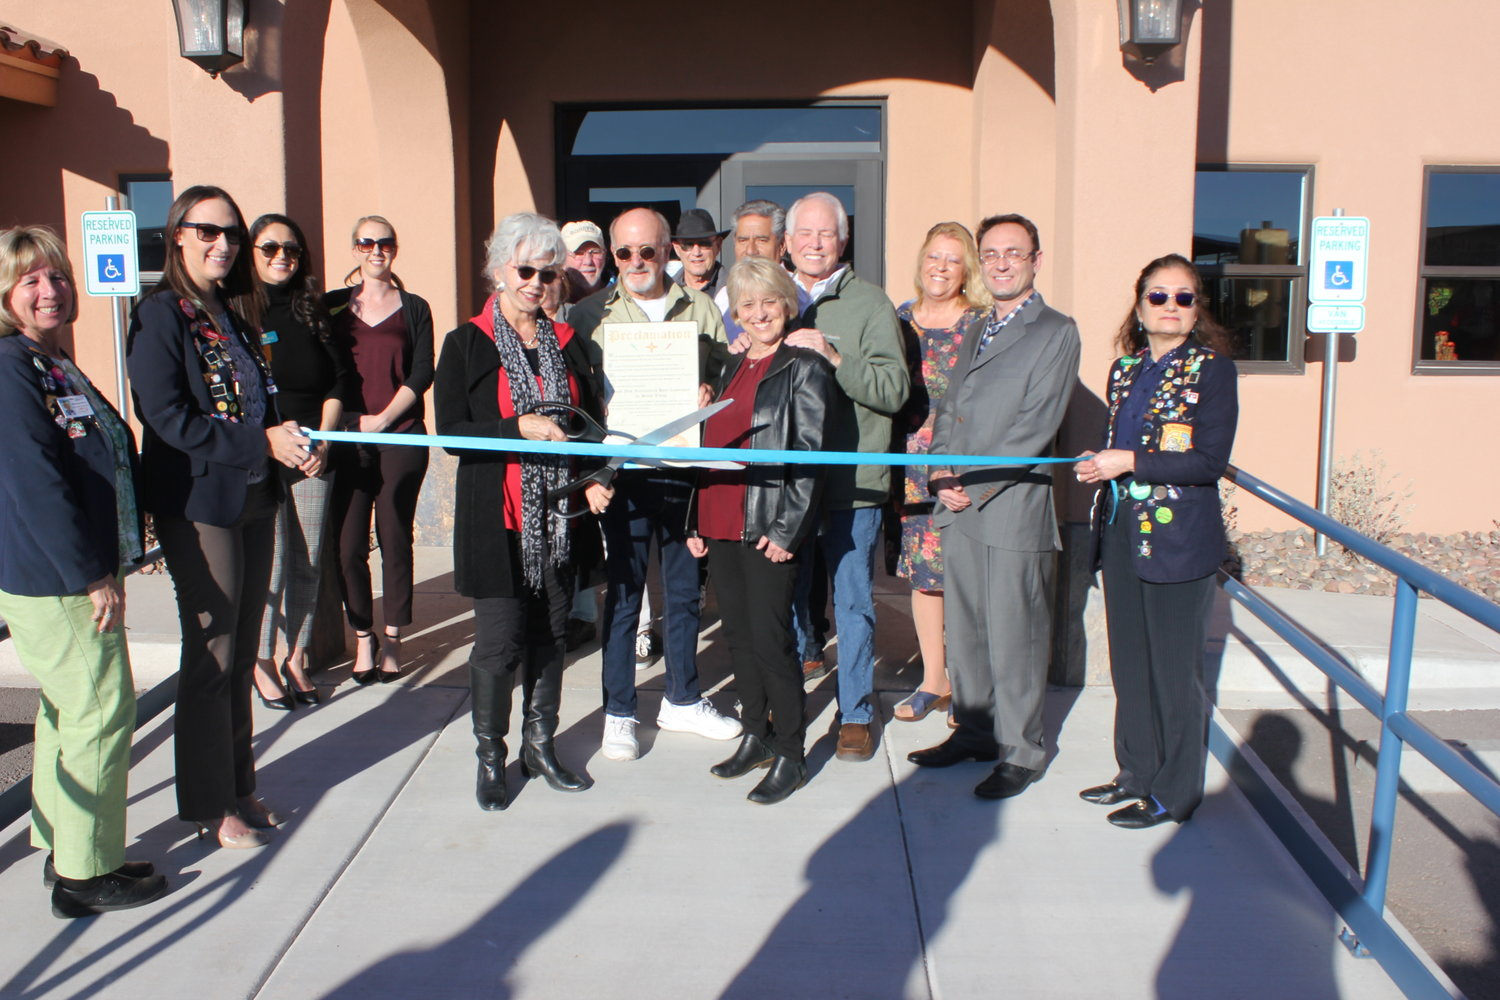 One of the Trails West Senior Community owners, Connie Hines, cuts the ribbon at the Greater Las Cruces Chamber of Commerce grand opening ceremony of Trails West's second clubhouse.